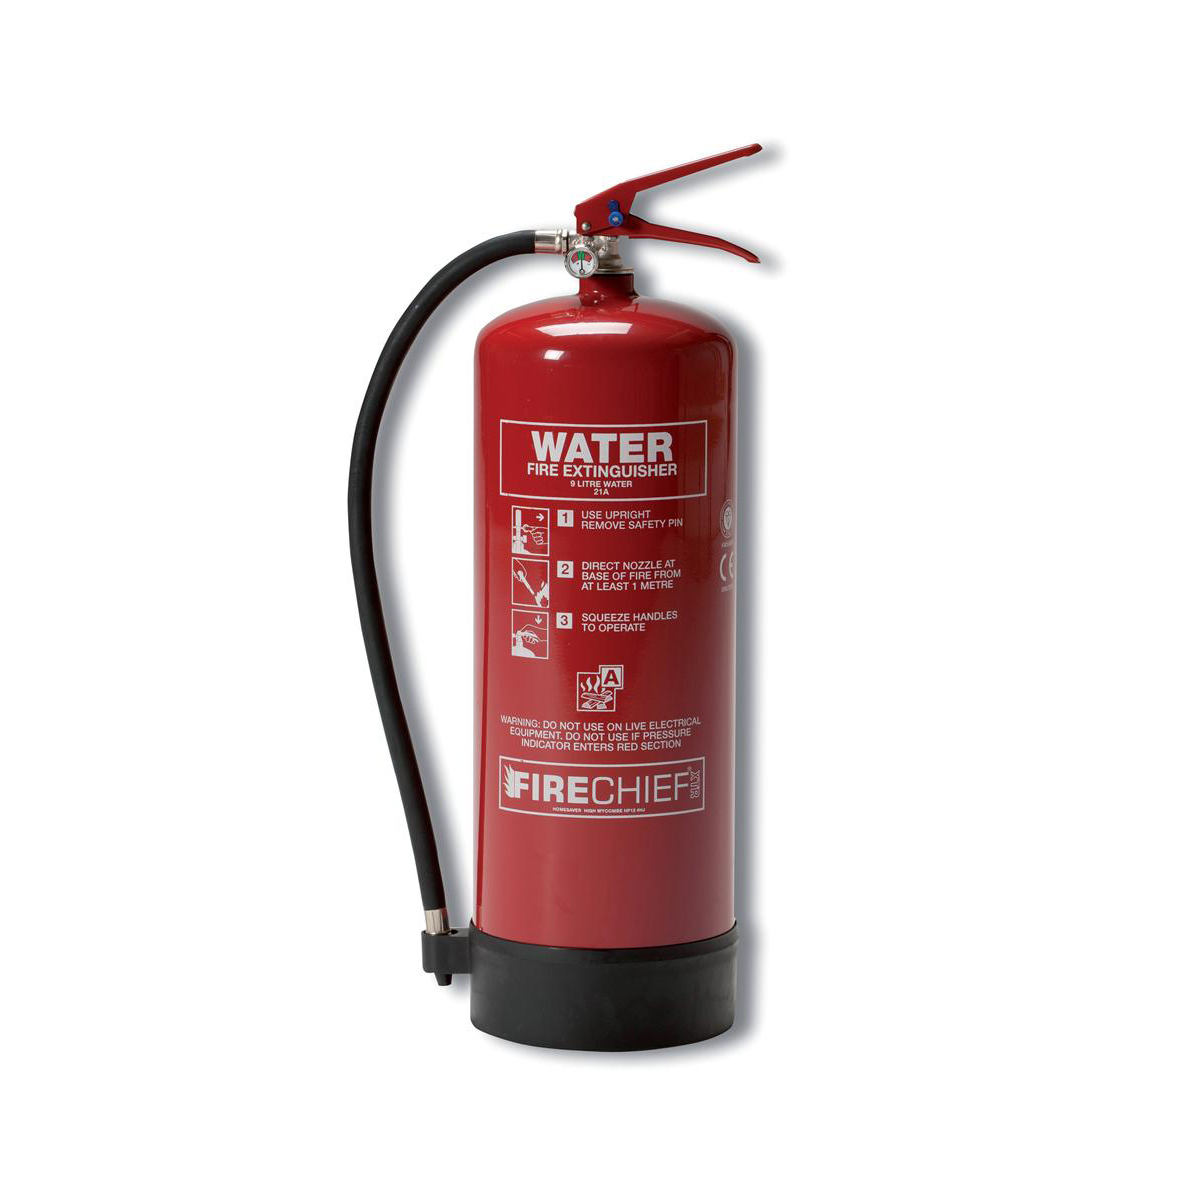 Water Firechief 9.0LTR Water Fire Extinguisher for Class A Fires Ref WG10150